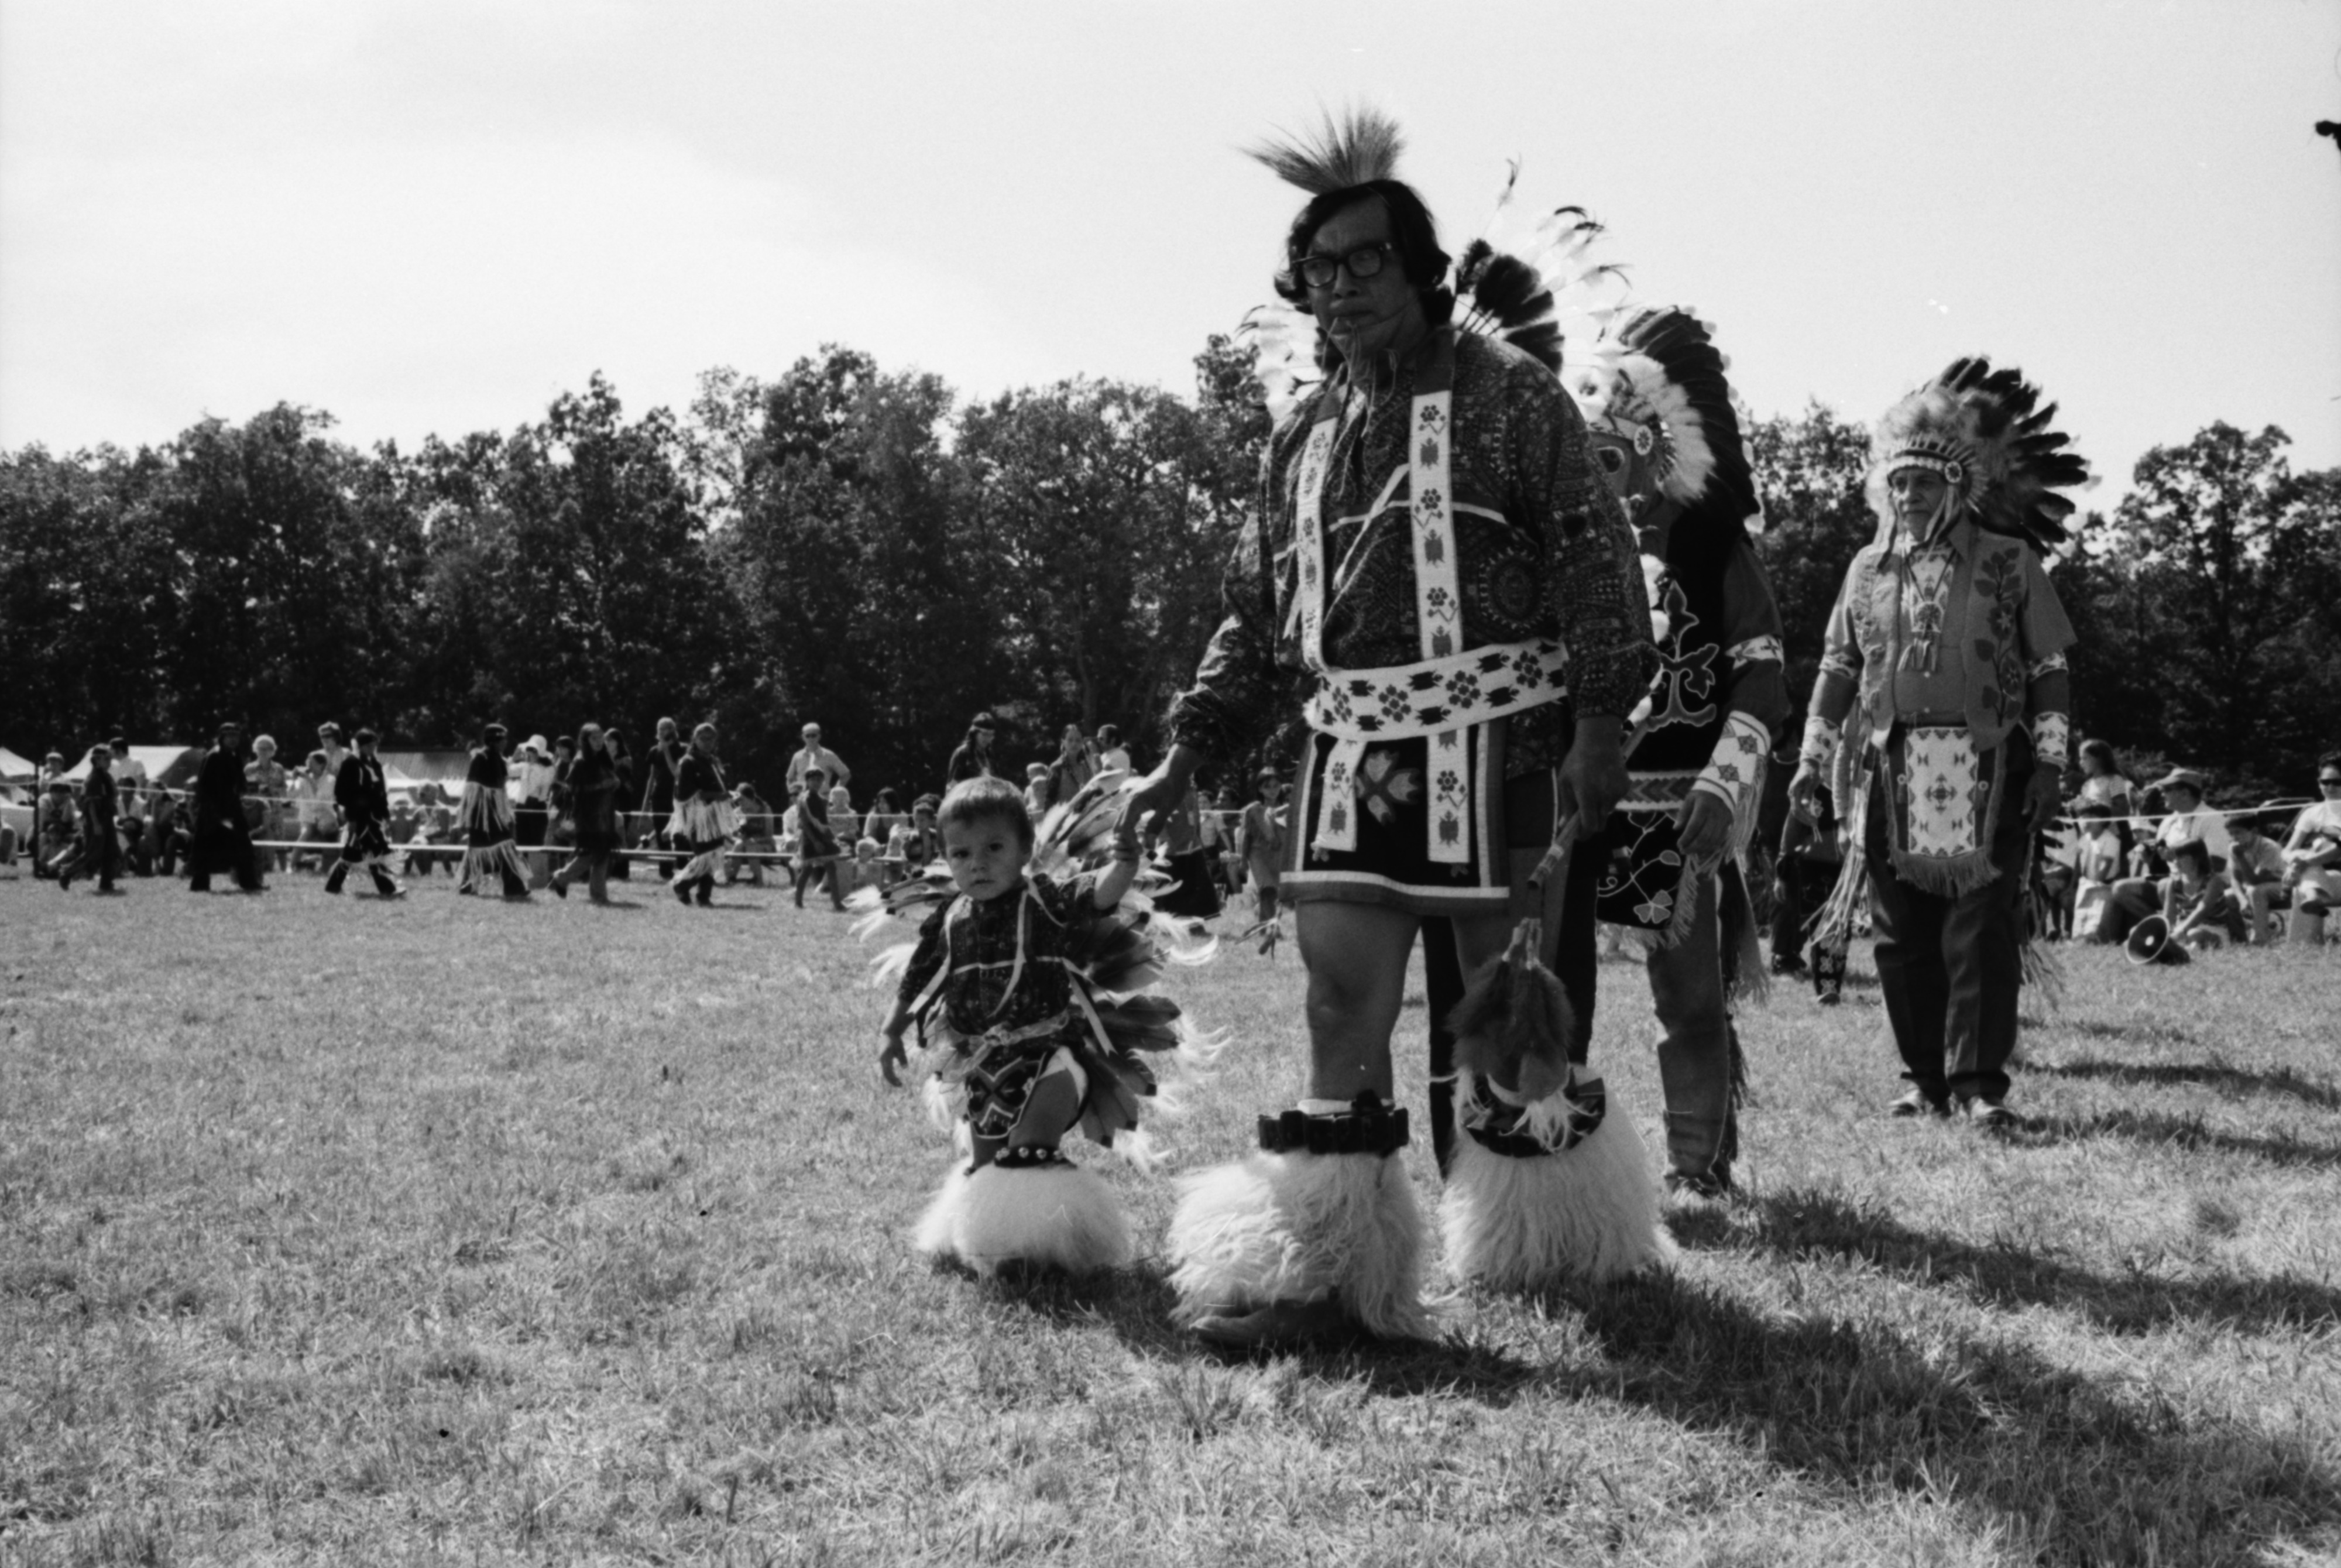 Stanley Morseau and his son, Stanley Jr., at the annual Powwow sponsored by American Indians Unlimited (AIU), Knights of Columbus Park, August 1972 image